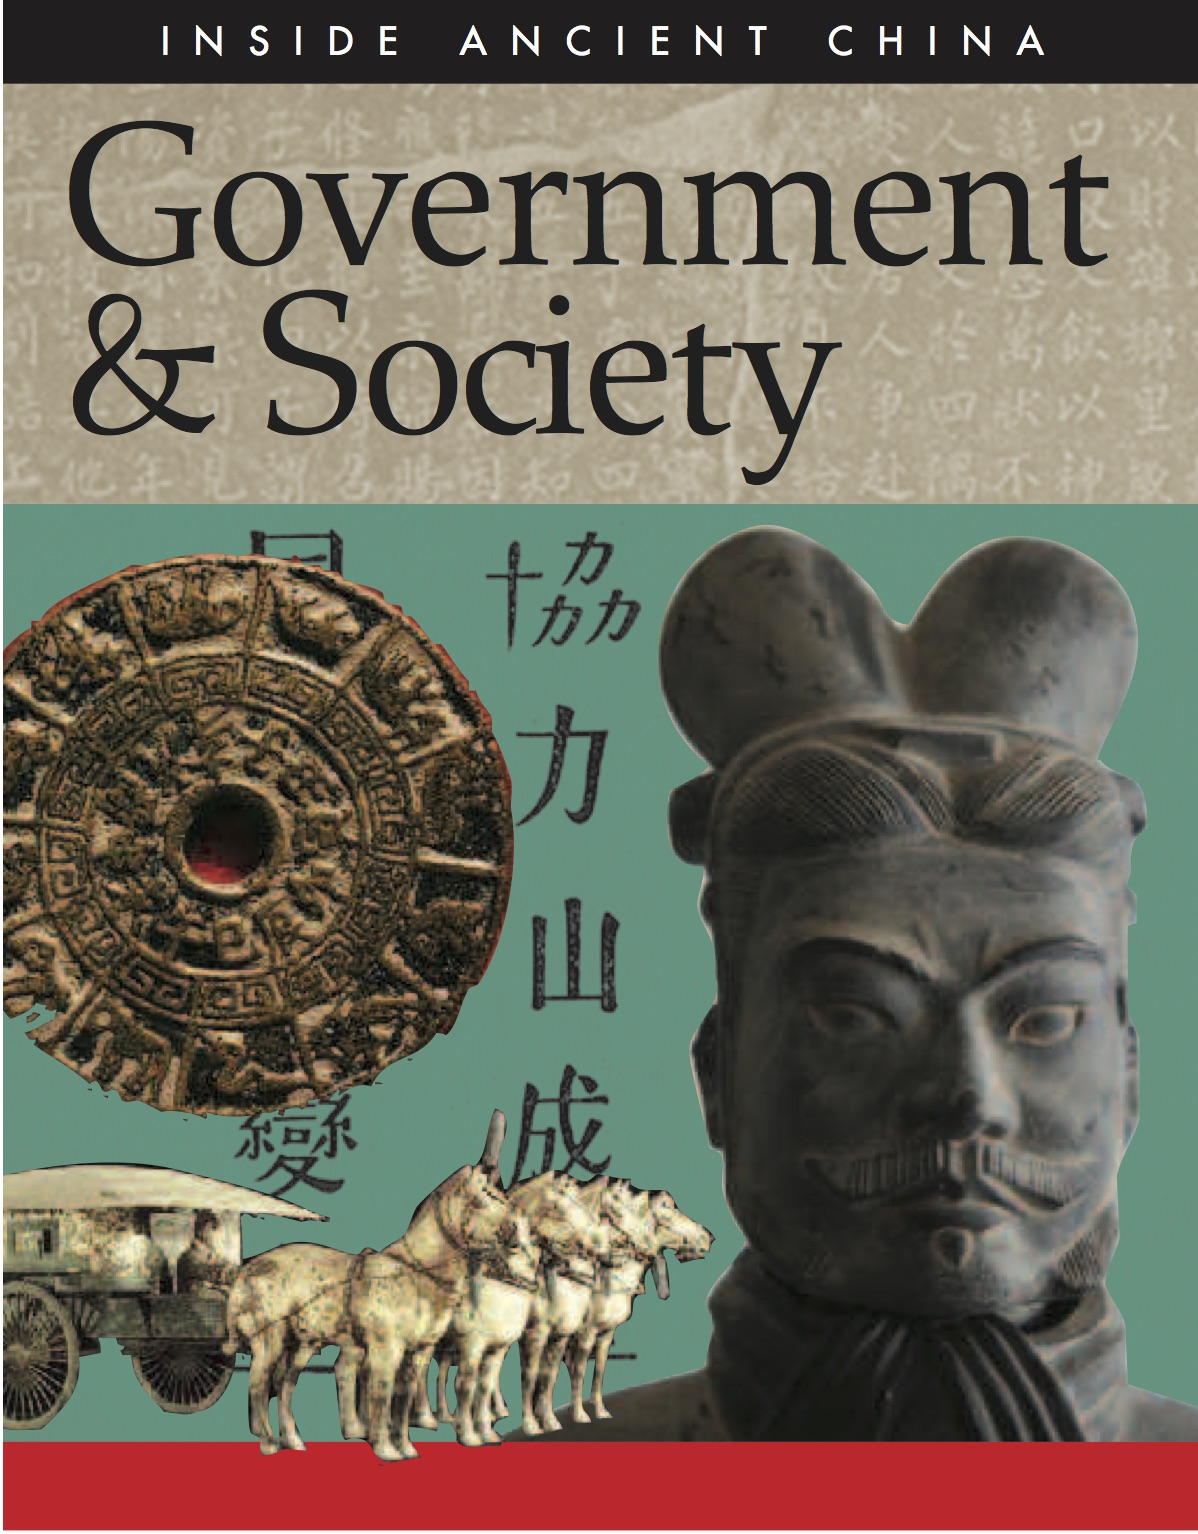 Inside Ancient China: Government & Society